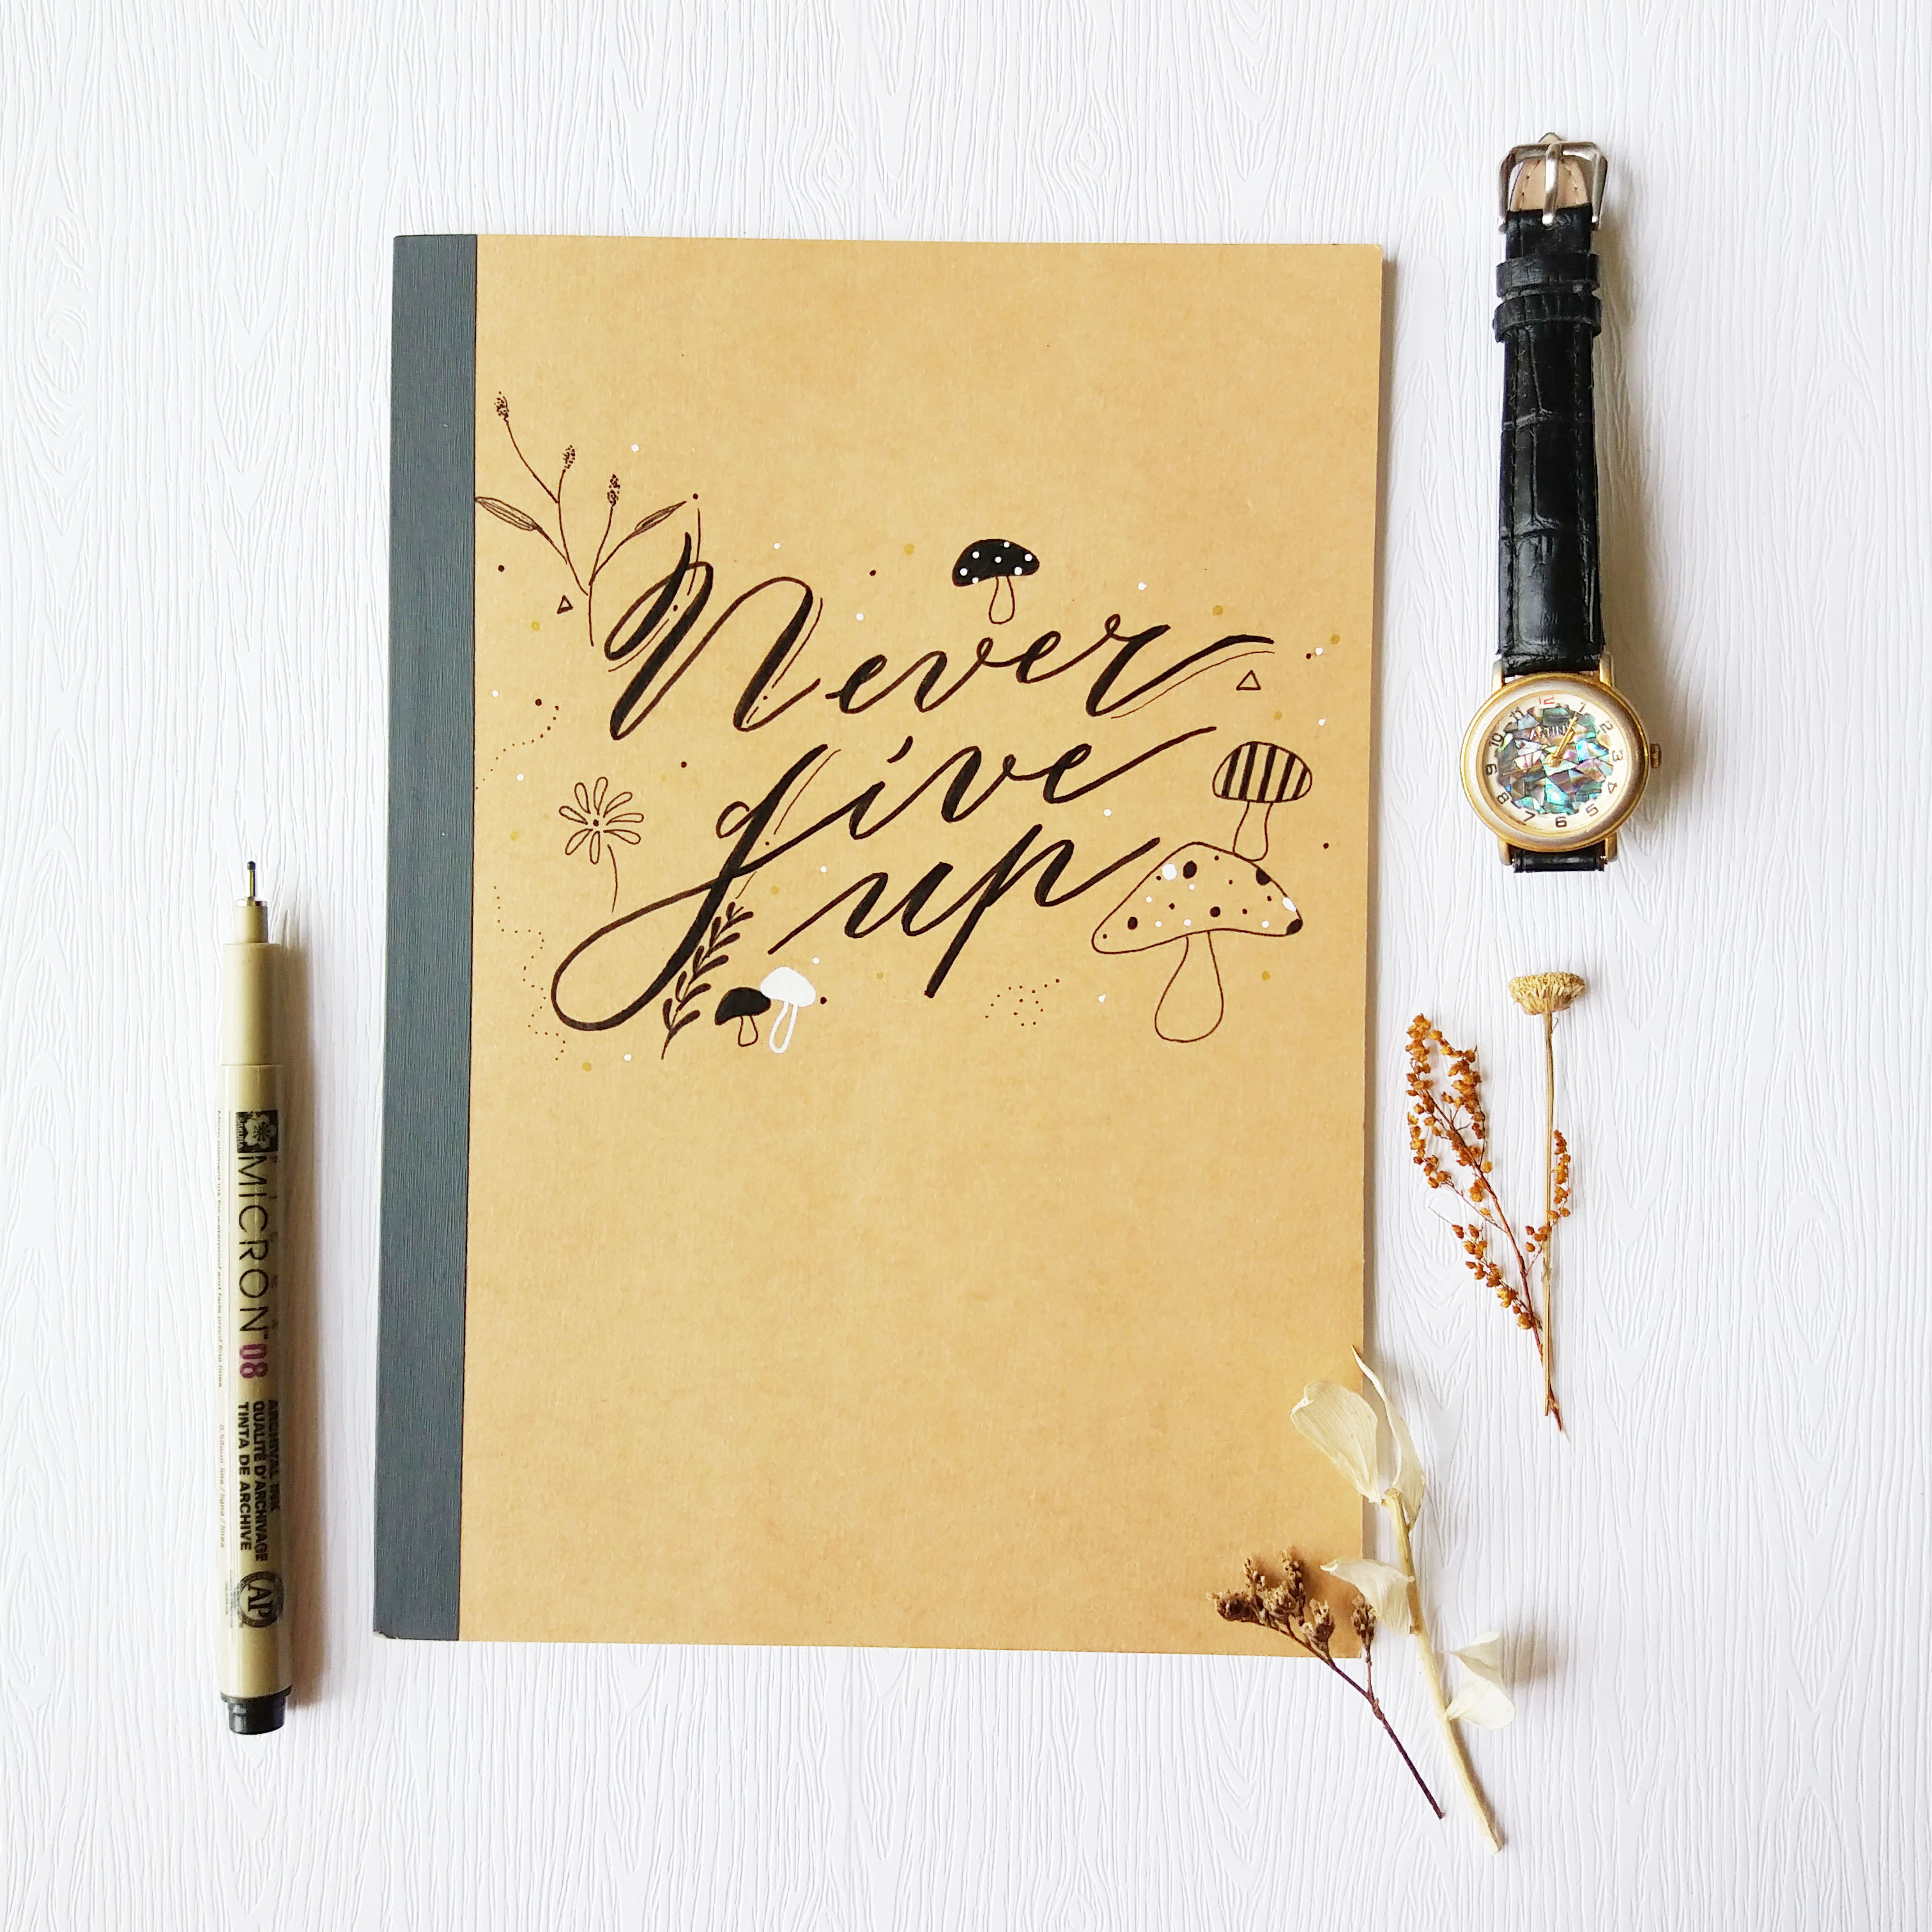 Calligraphy Product: Notebook